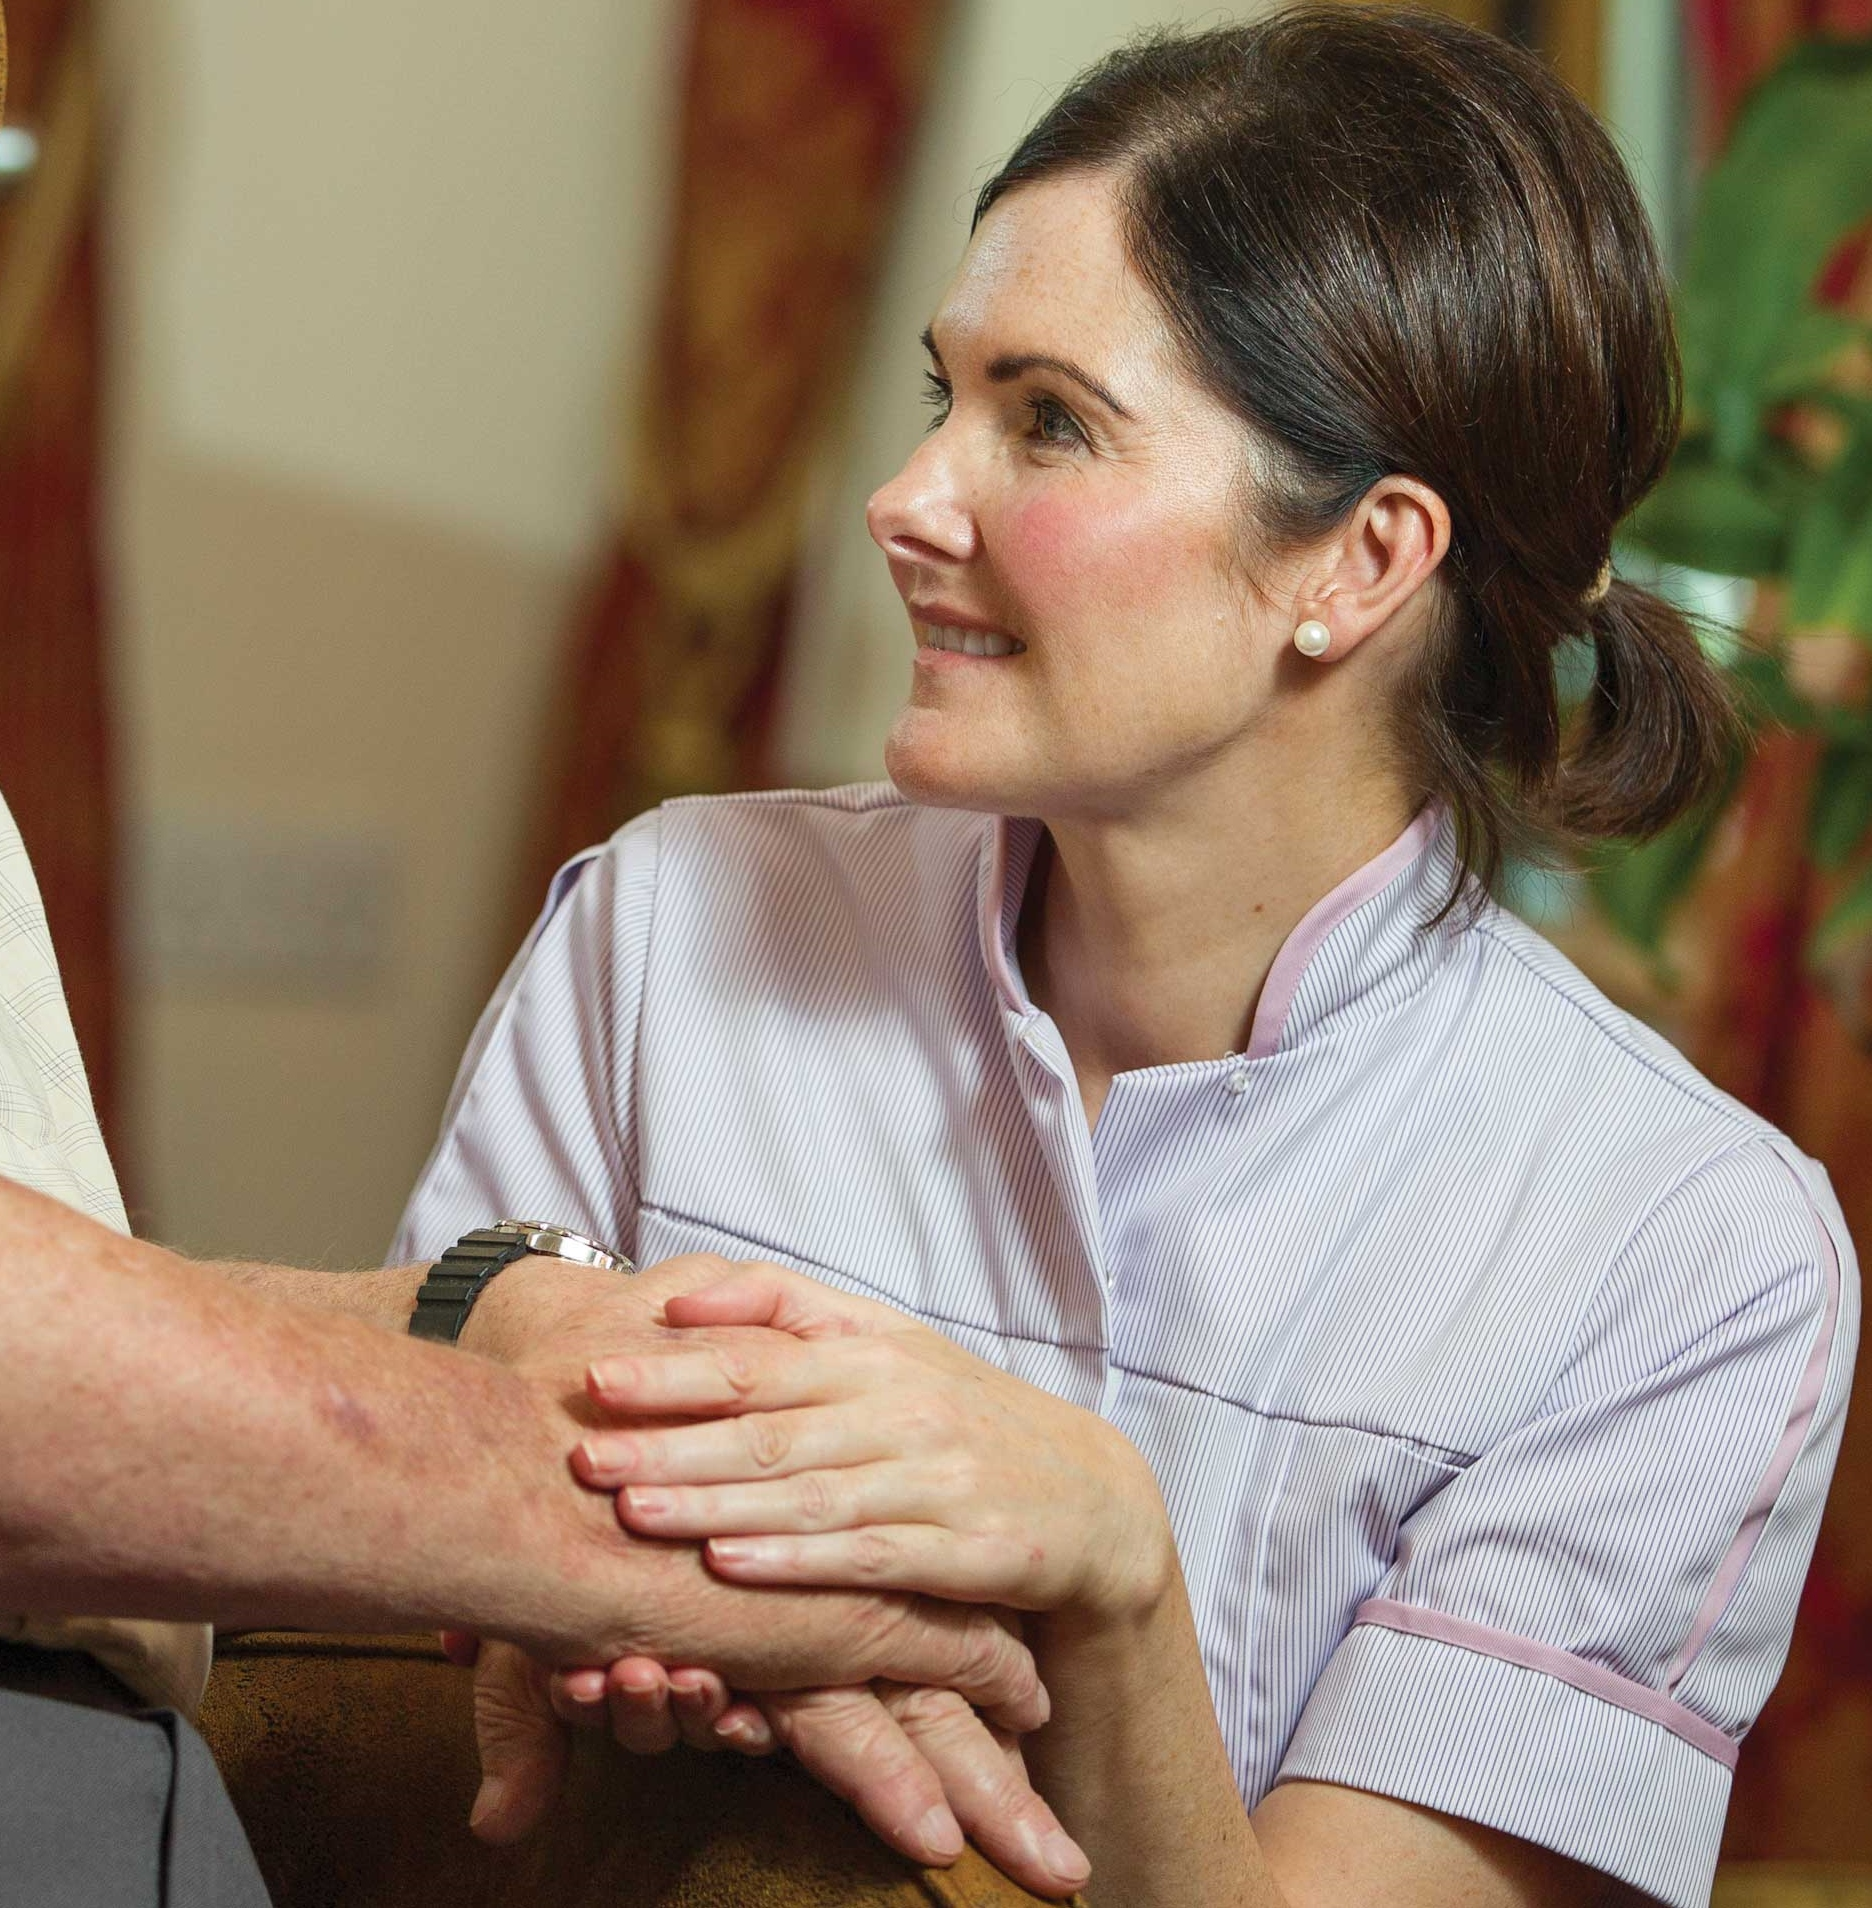 Glen Caring Has Care Assistant Vacancies in Northern Region